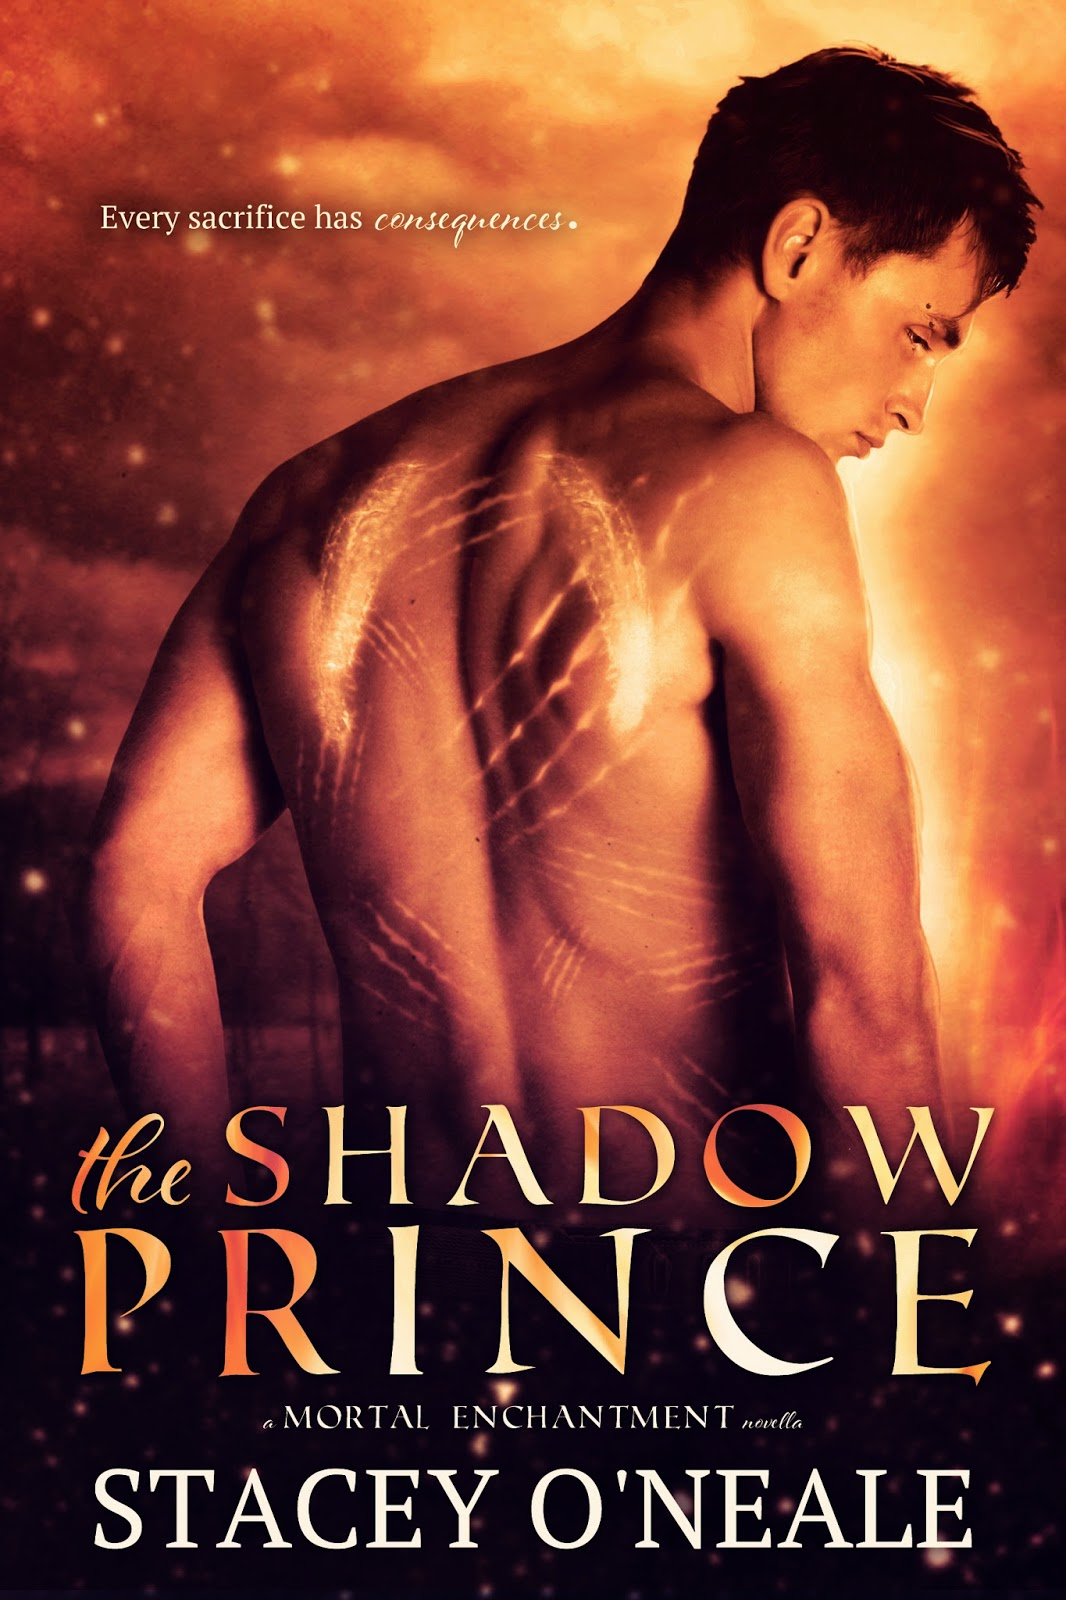 https://www.goodreads.com/book/show/20542942-the-shadow-prince